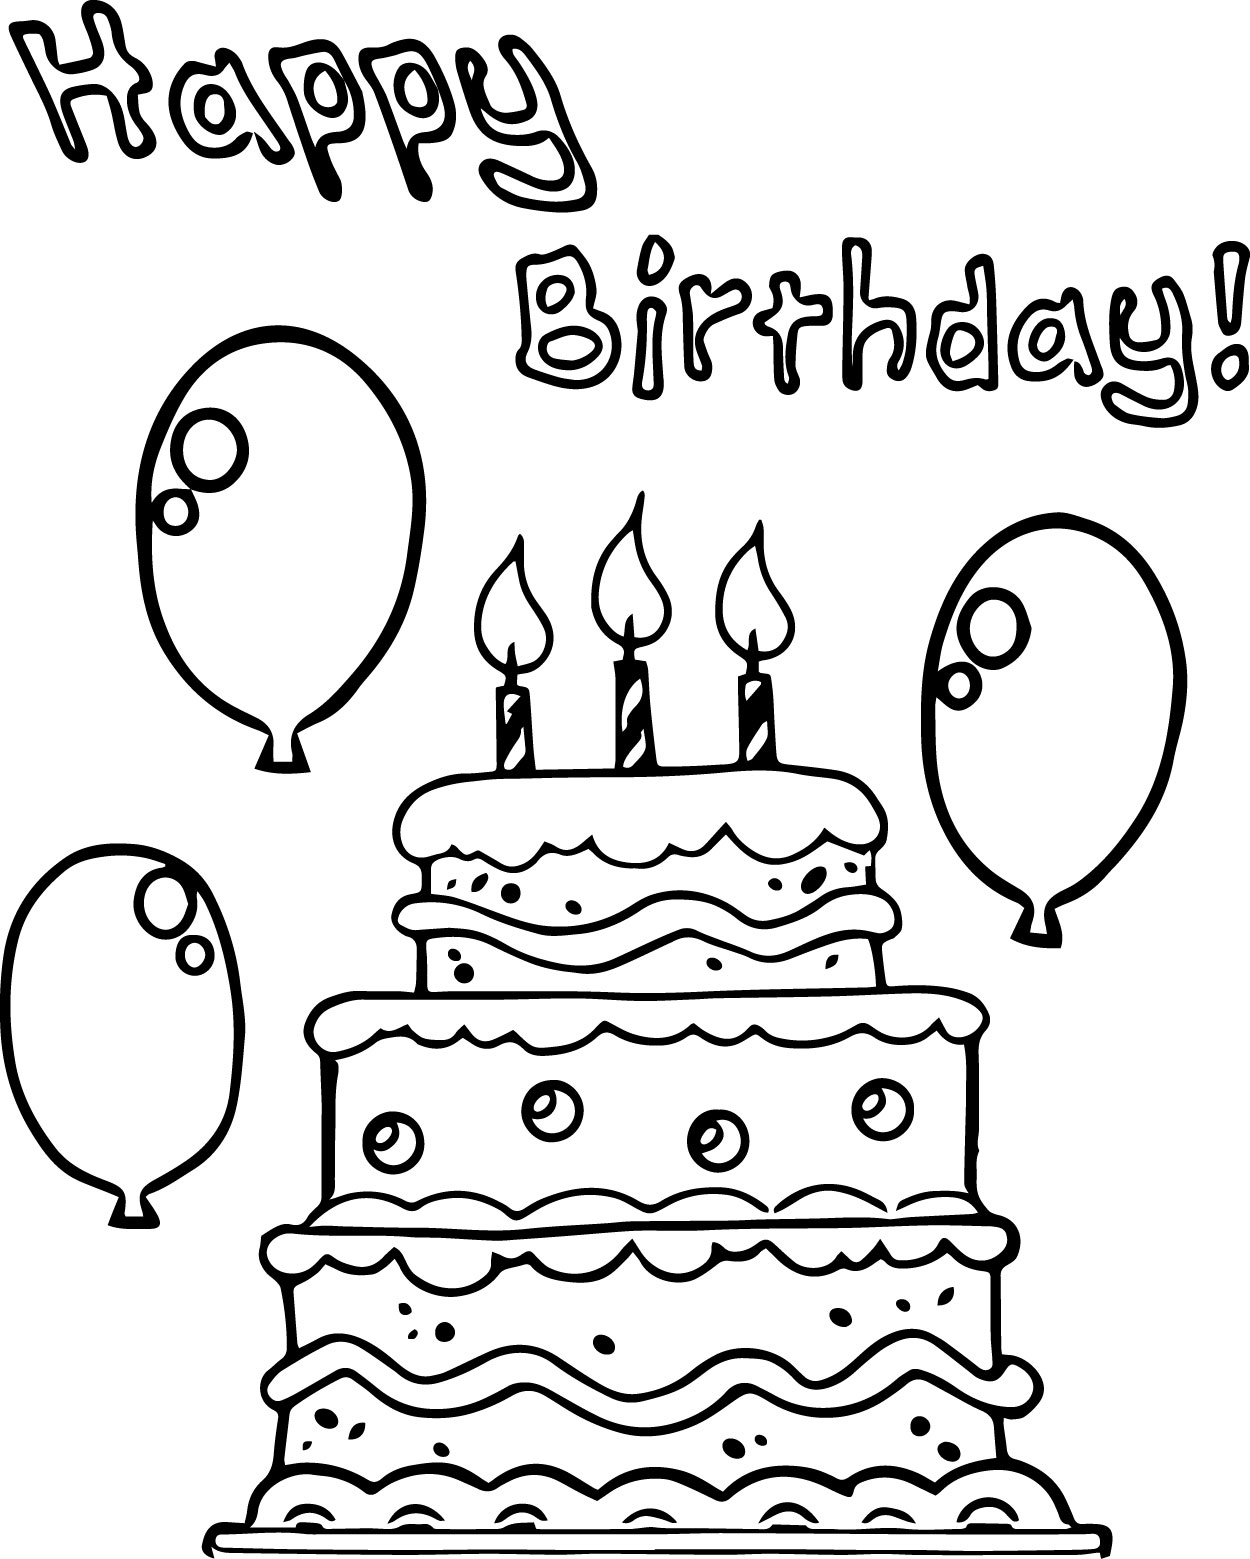 Birthday Cake Balloon Party Coloring Page | Wecoloringpage.com